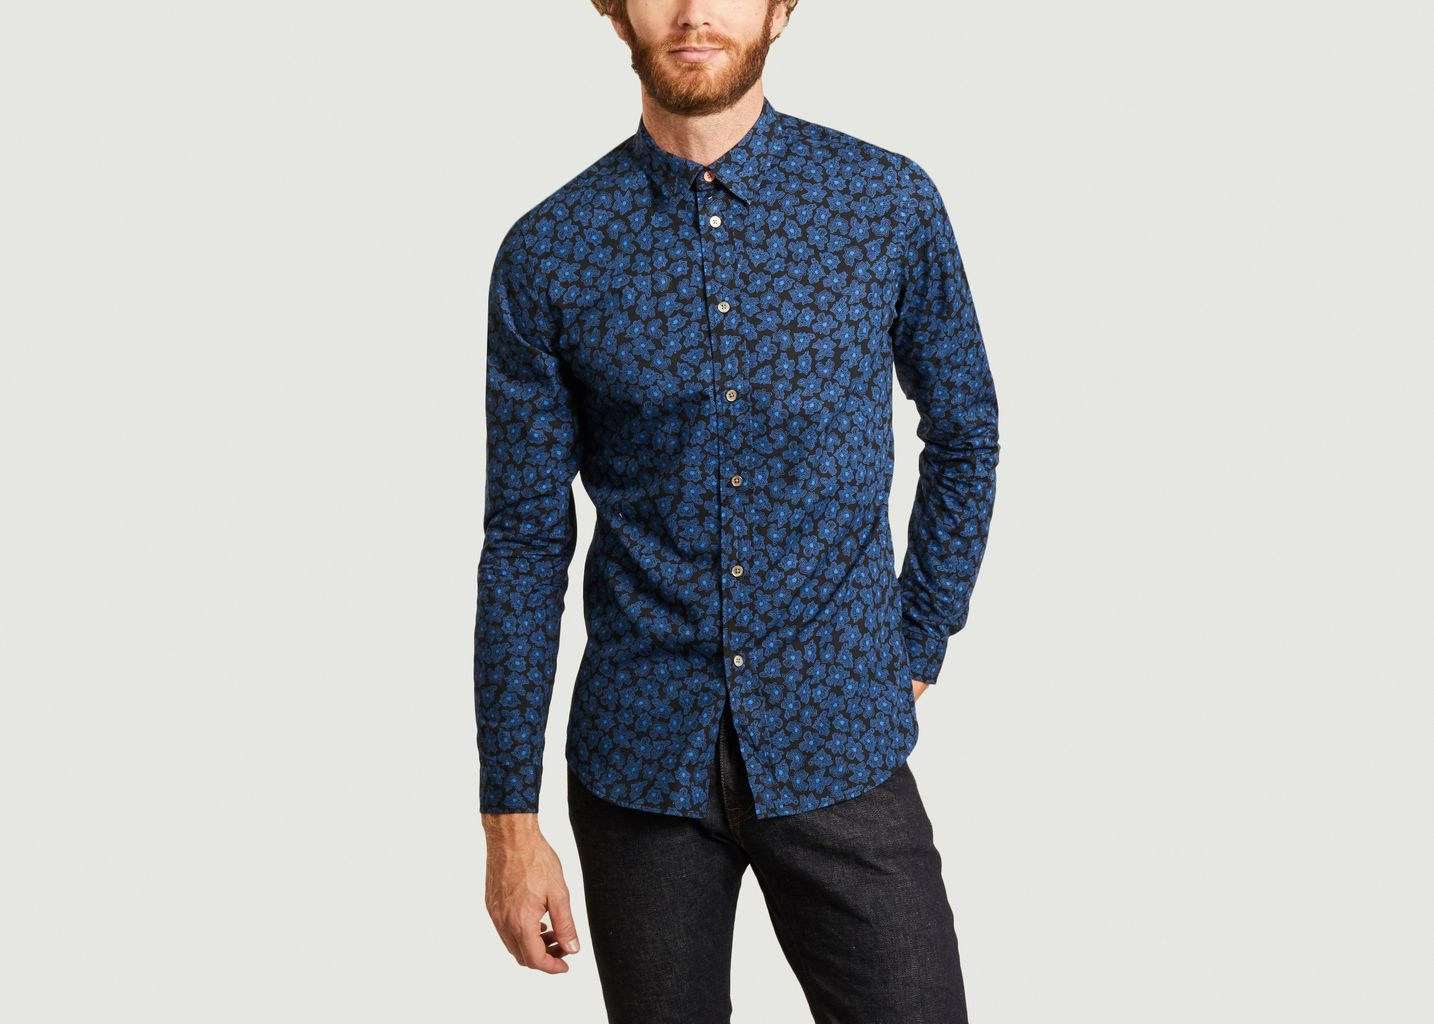 Chemise fleurie - PS by PAUL SMITH